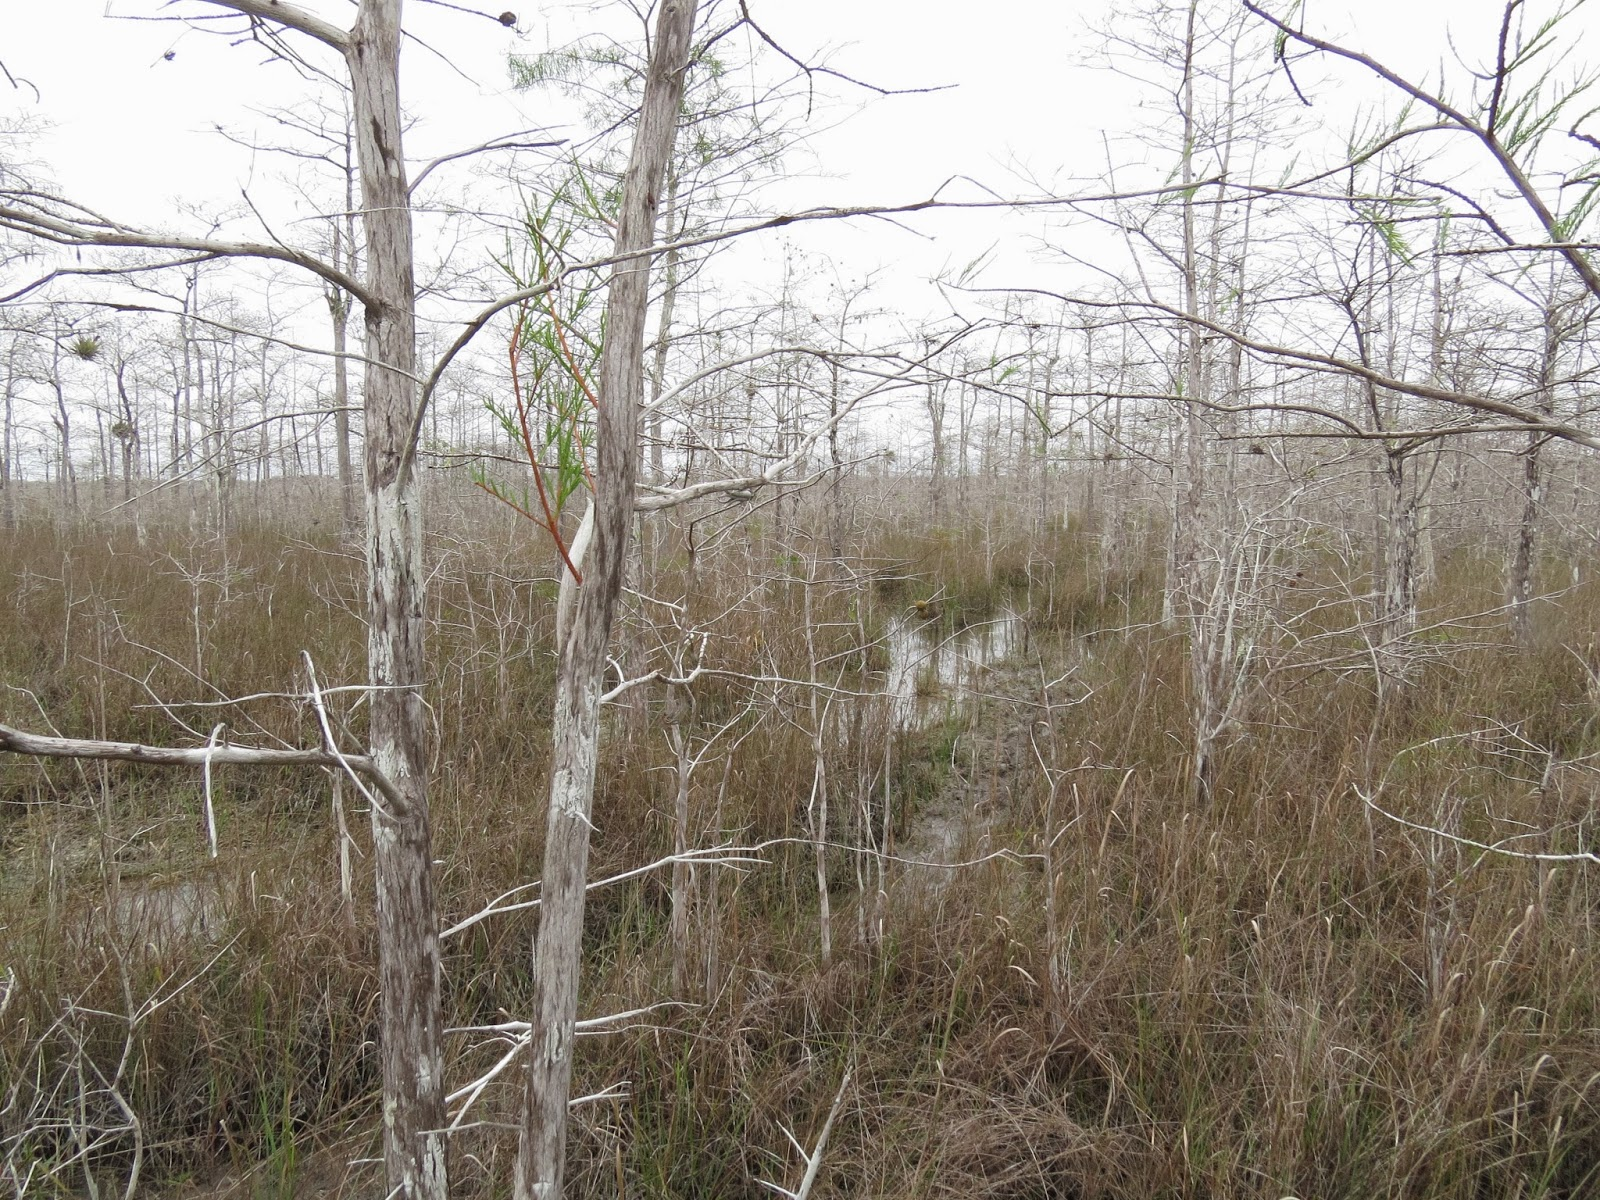 Big Cypress Swamp, viewed from the flooded Gator Trail